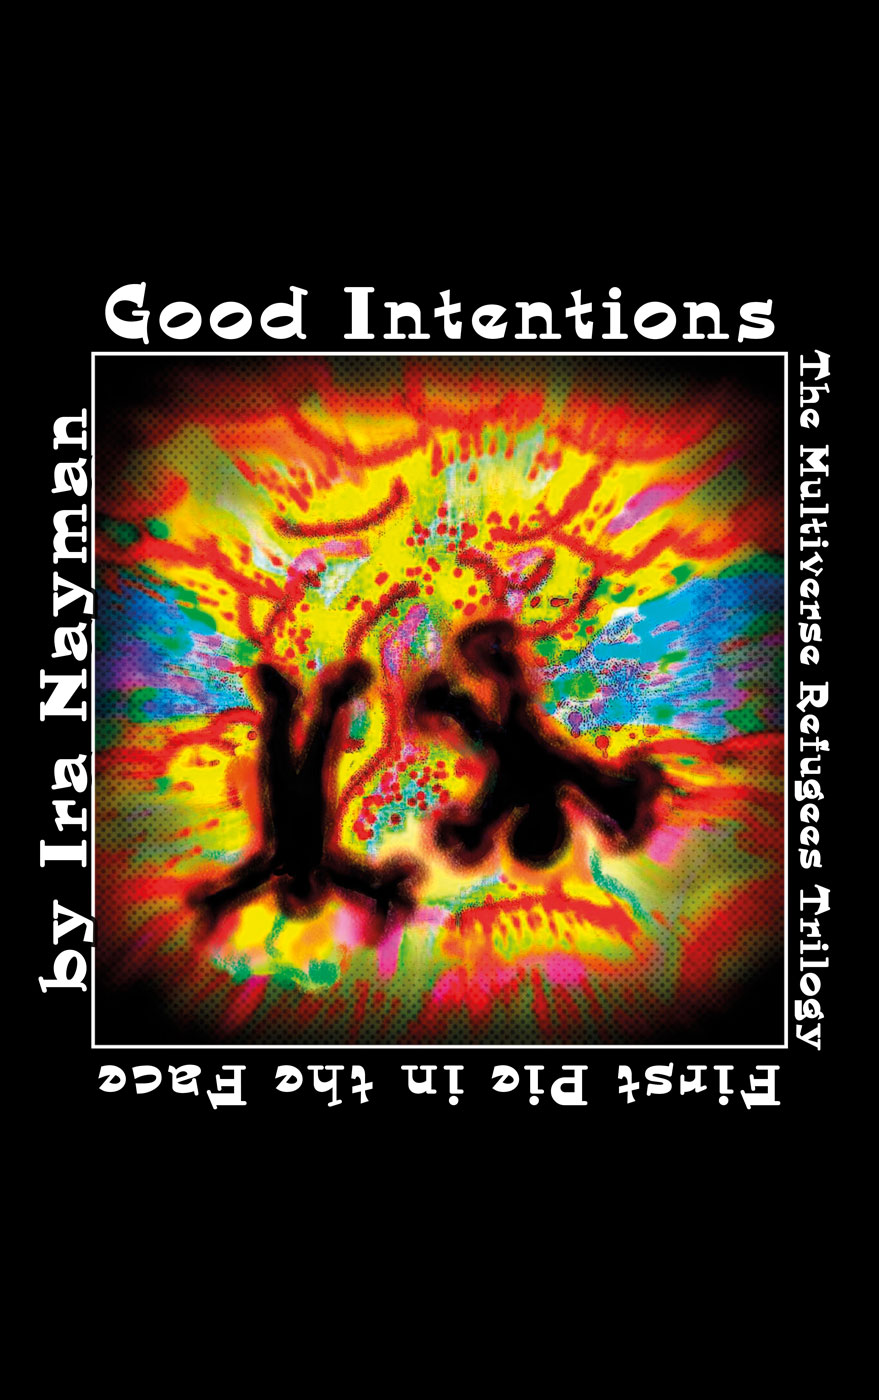 Good Intentions by Ira Nayman; Cover art by Hugh Spencer